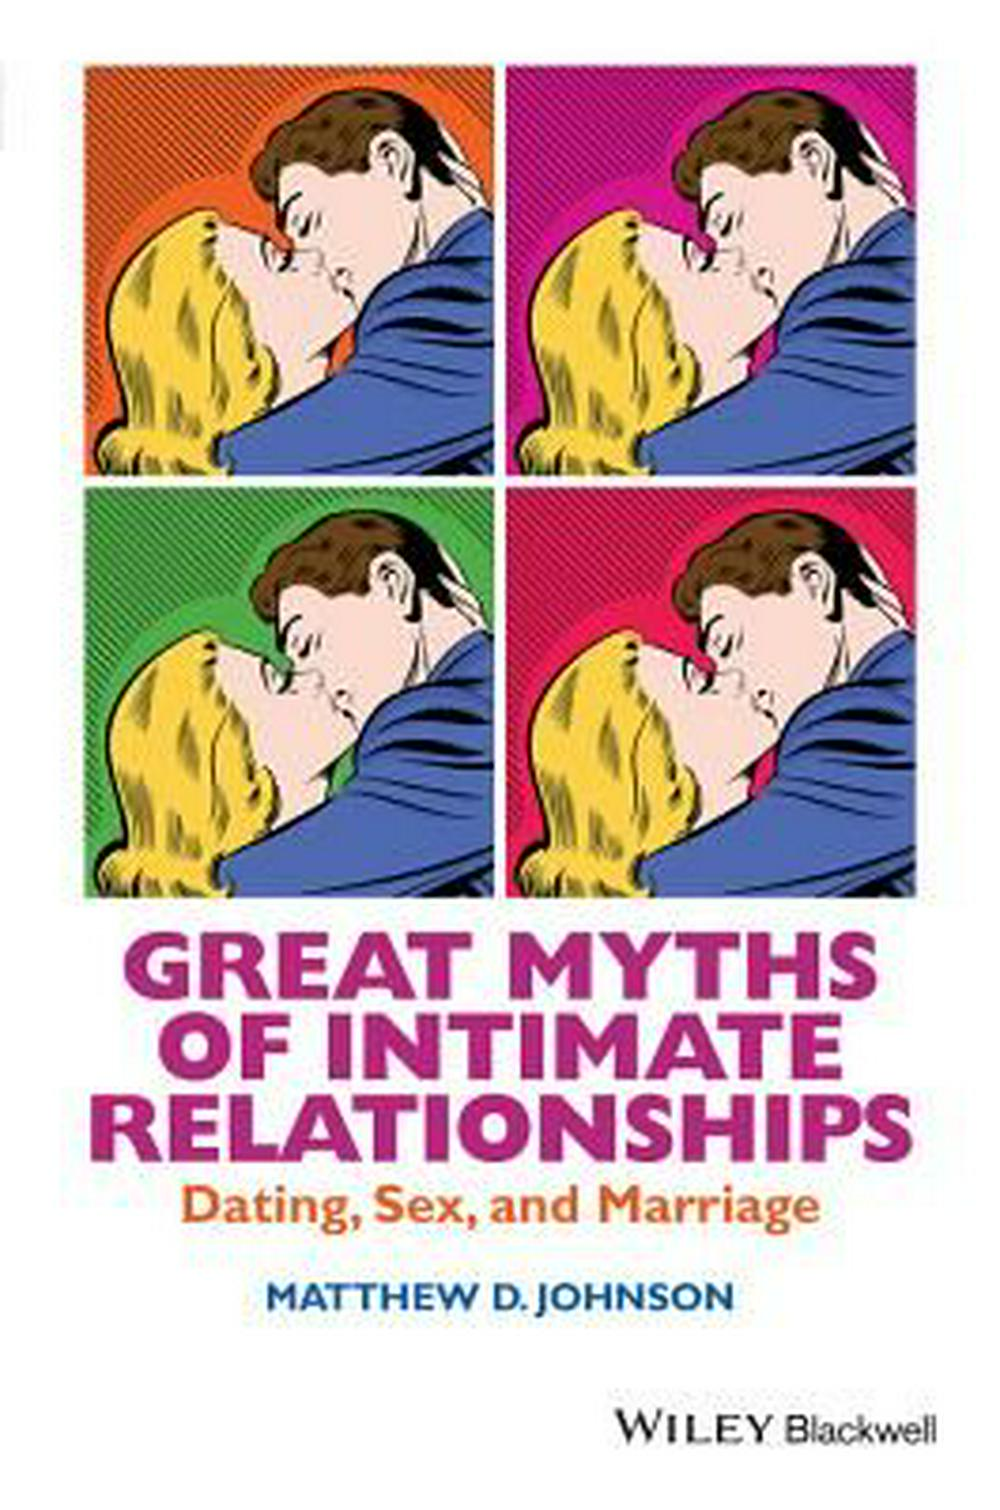 Great Myths of Intimate RelationshipsDating, Sex, and Marriage